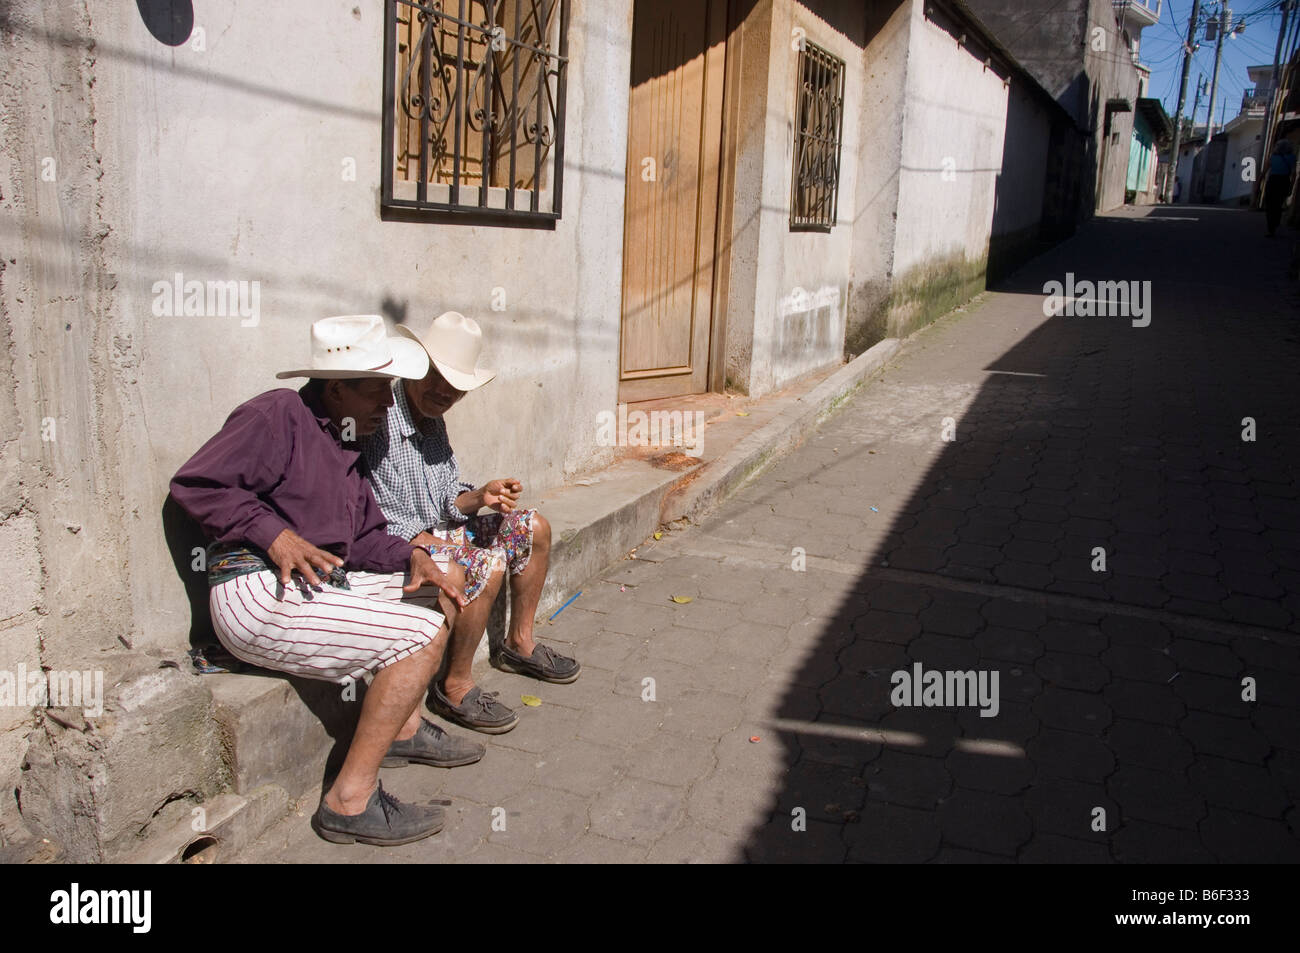 Two men in traditional costume socialising in an alley in Santiago Atitlan, Guatemala. - Stock Image